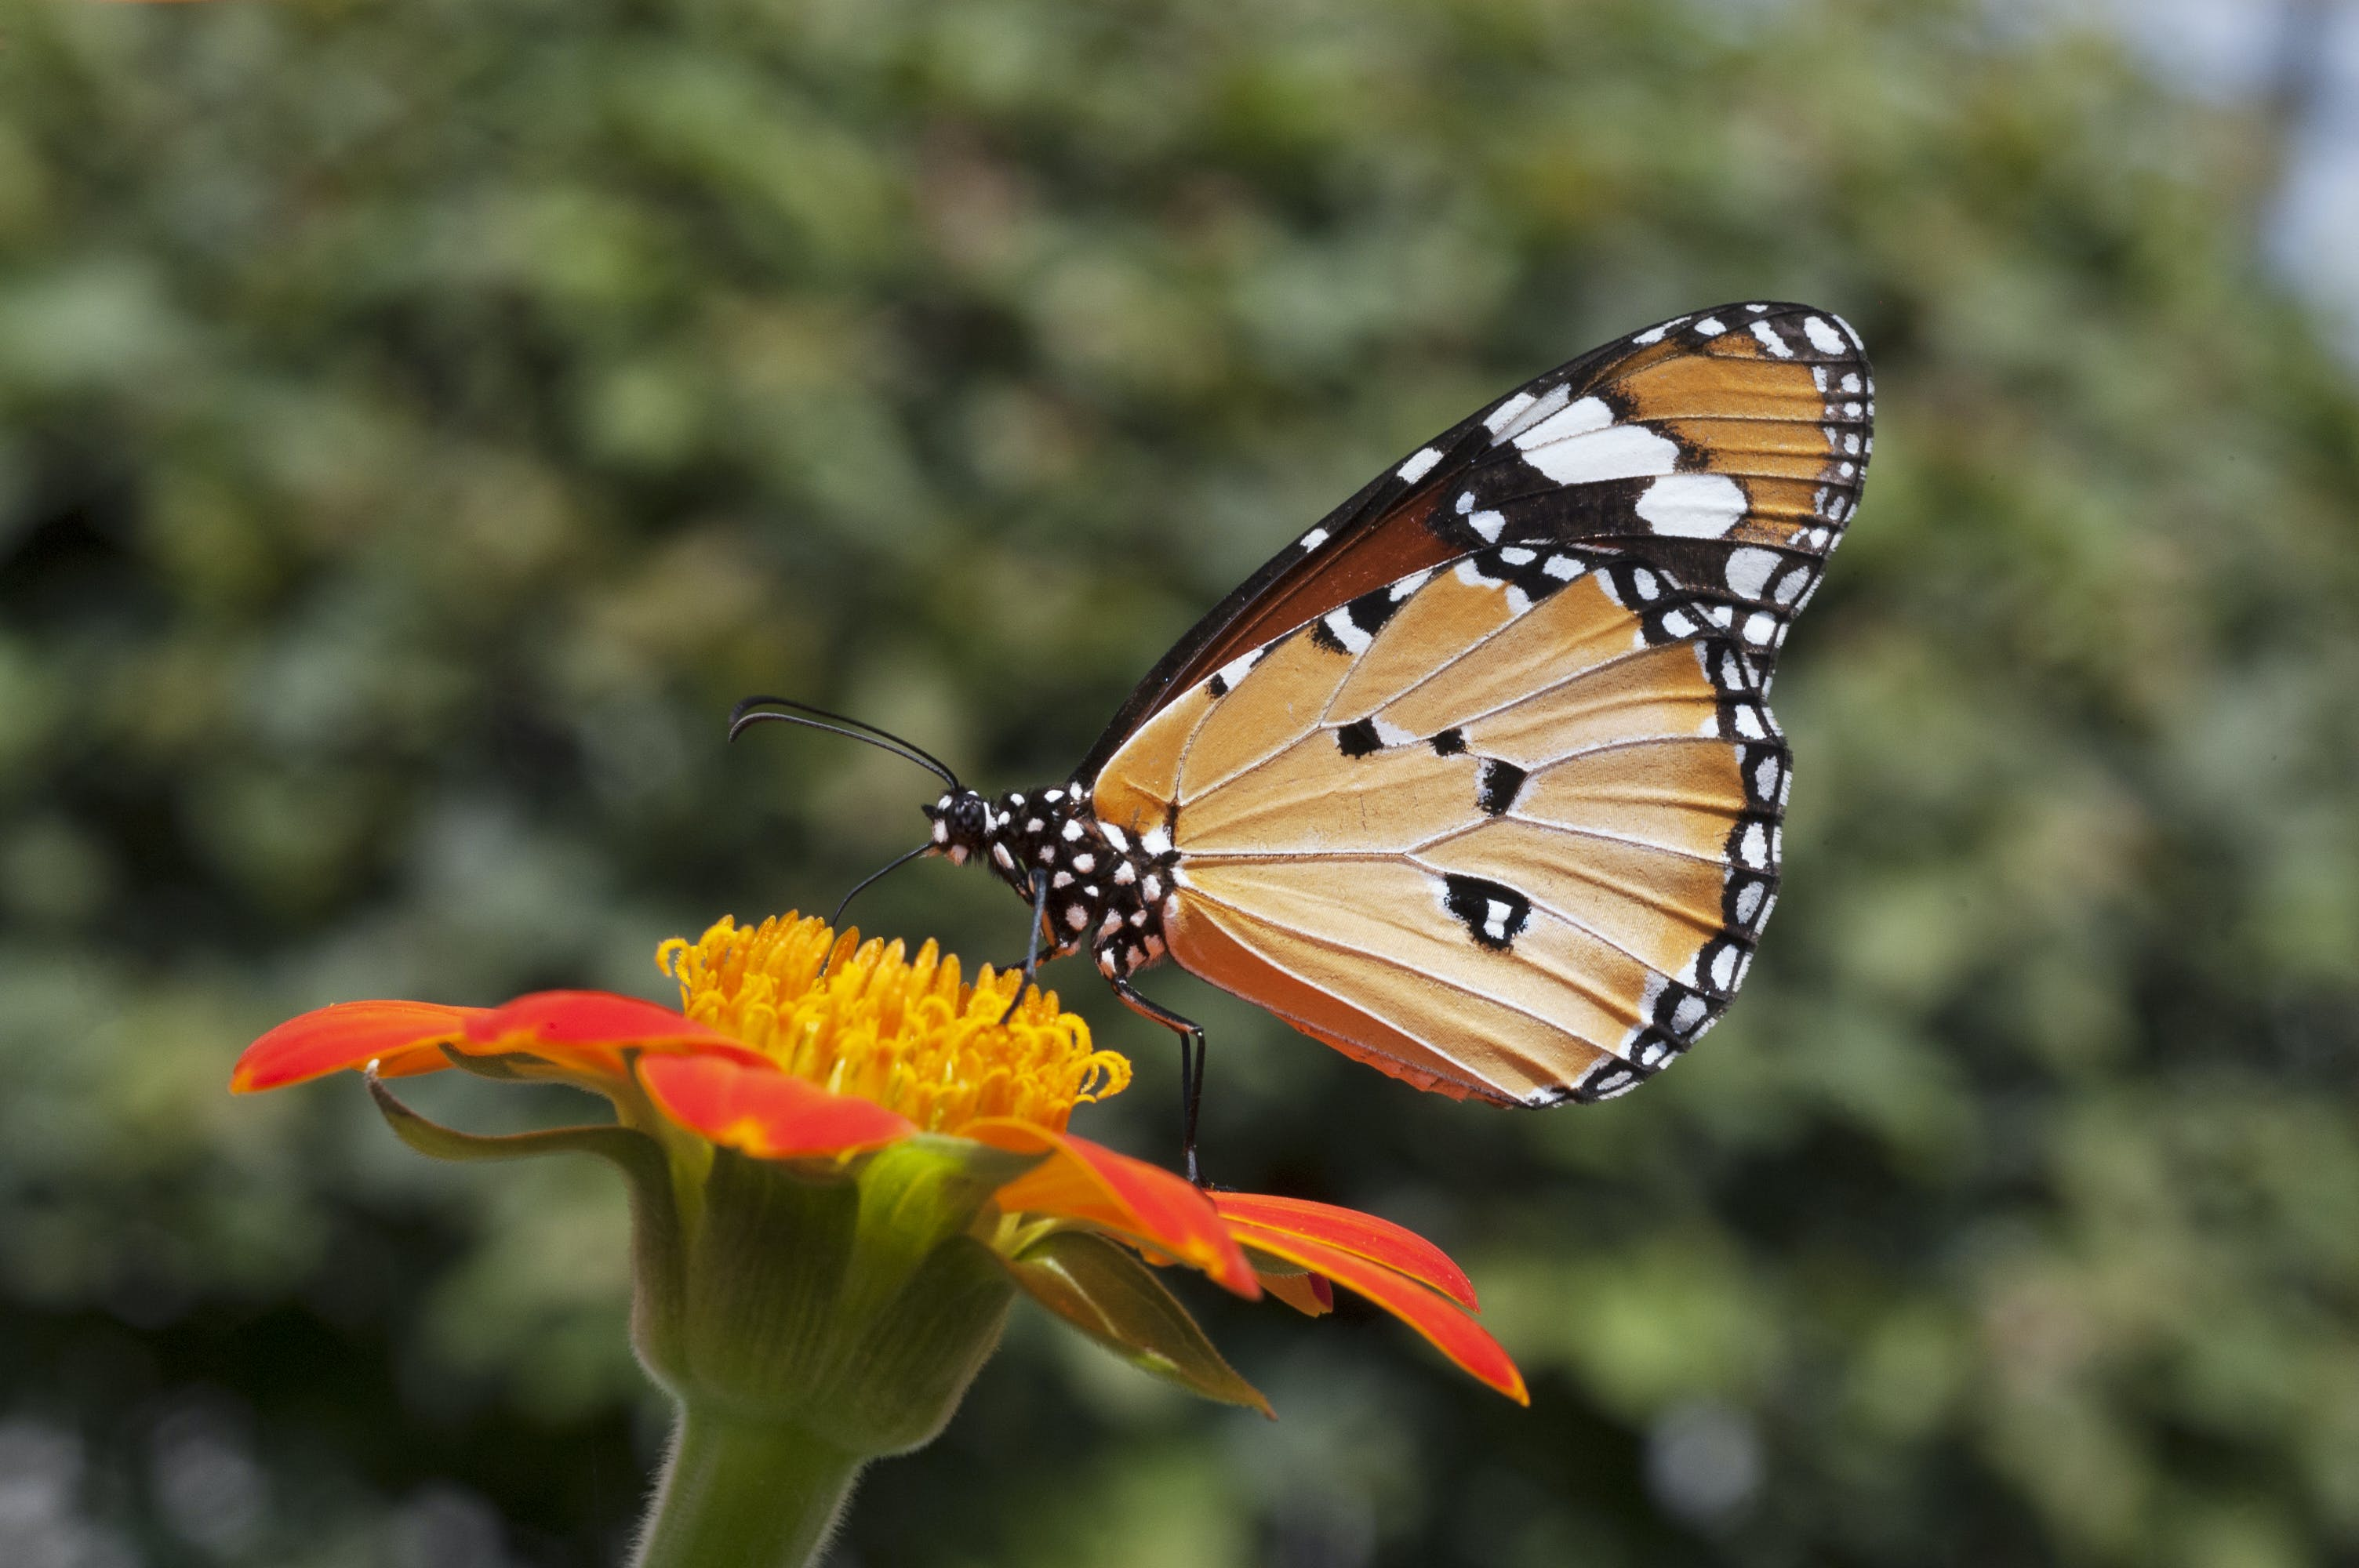 Free stock photo of Monarch Butterfly on a Tithonia Flower